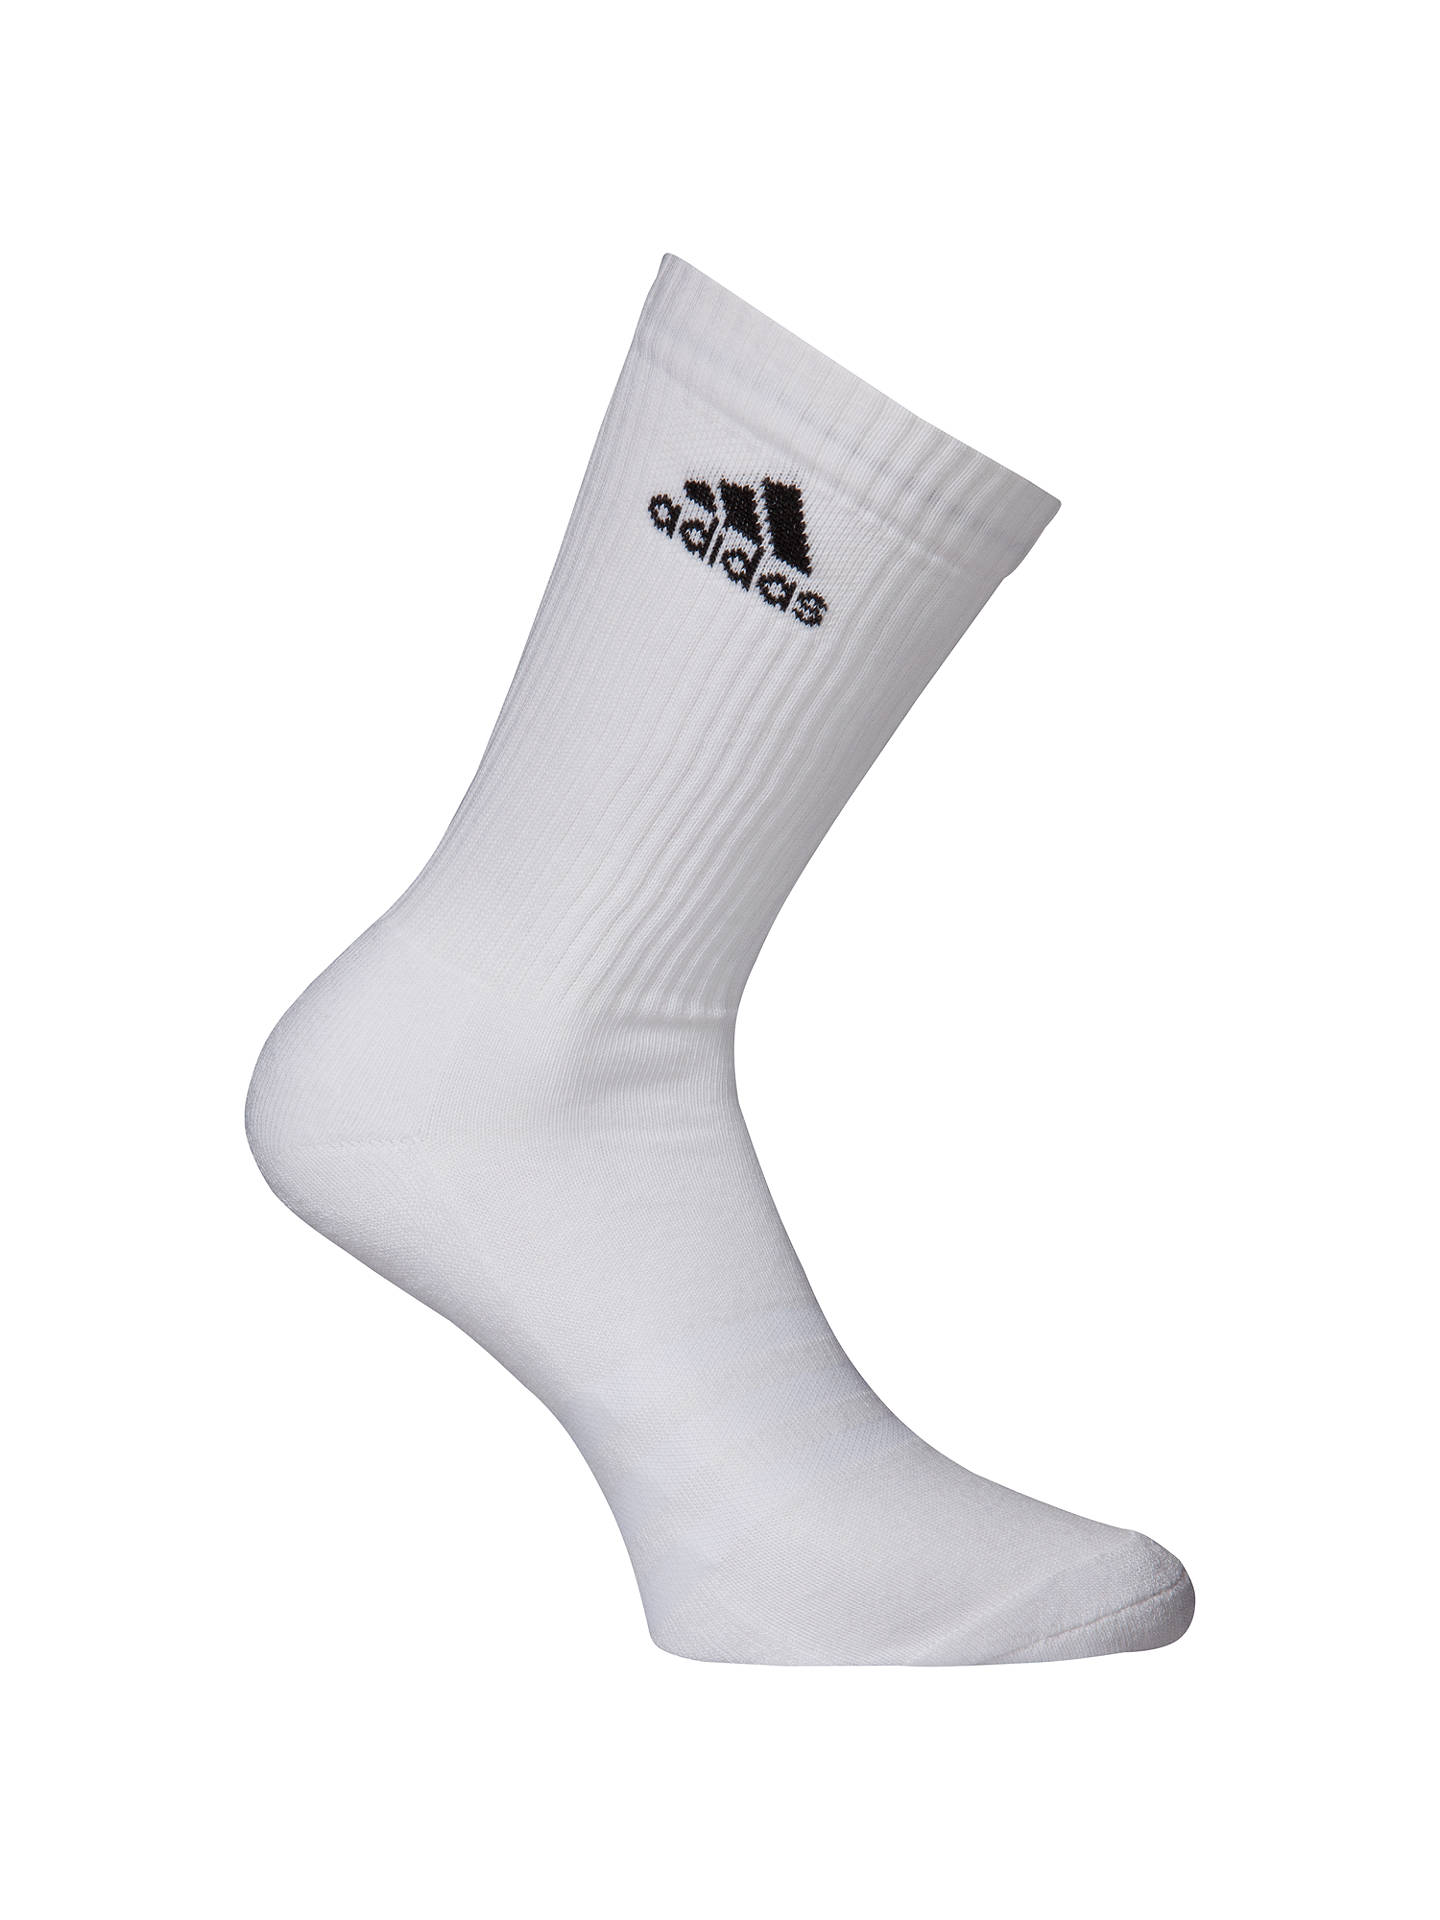 Buyadidas 3-Stripe Performance Crew Socks 1bb8e8b5db9f